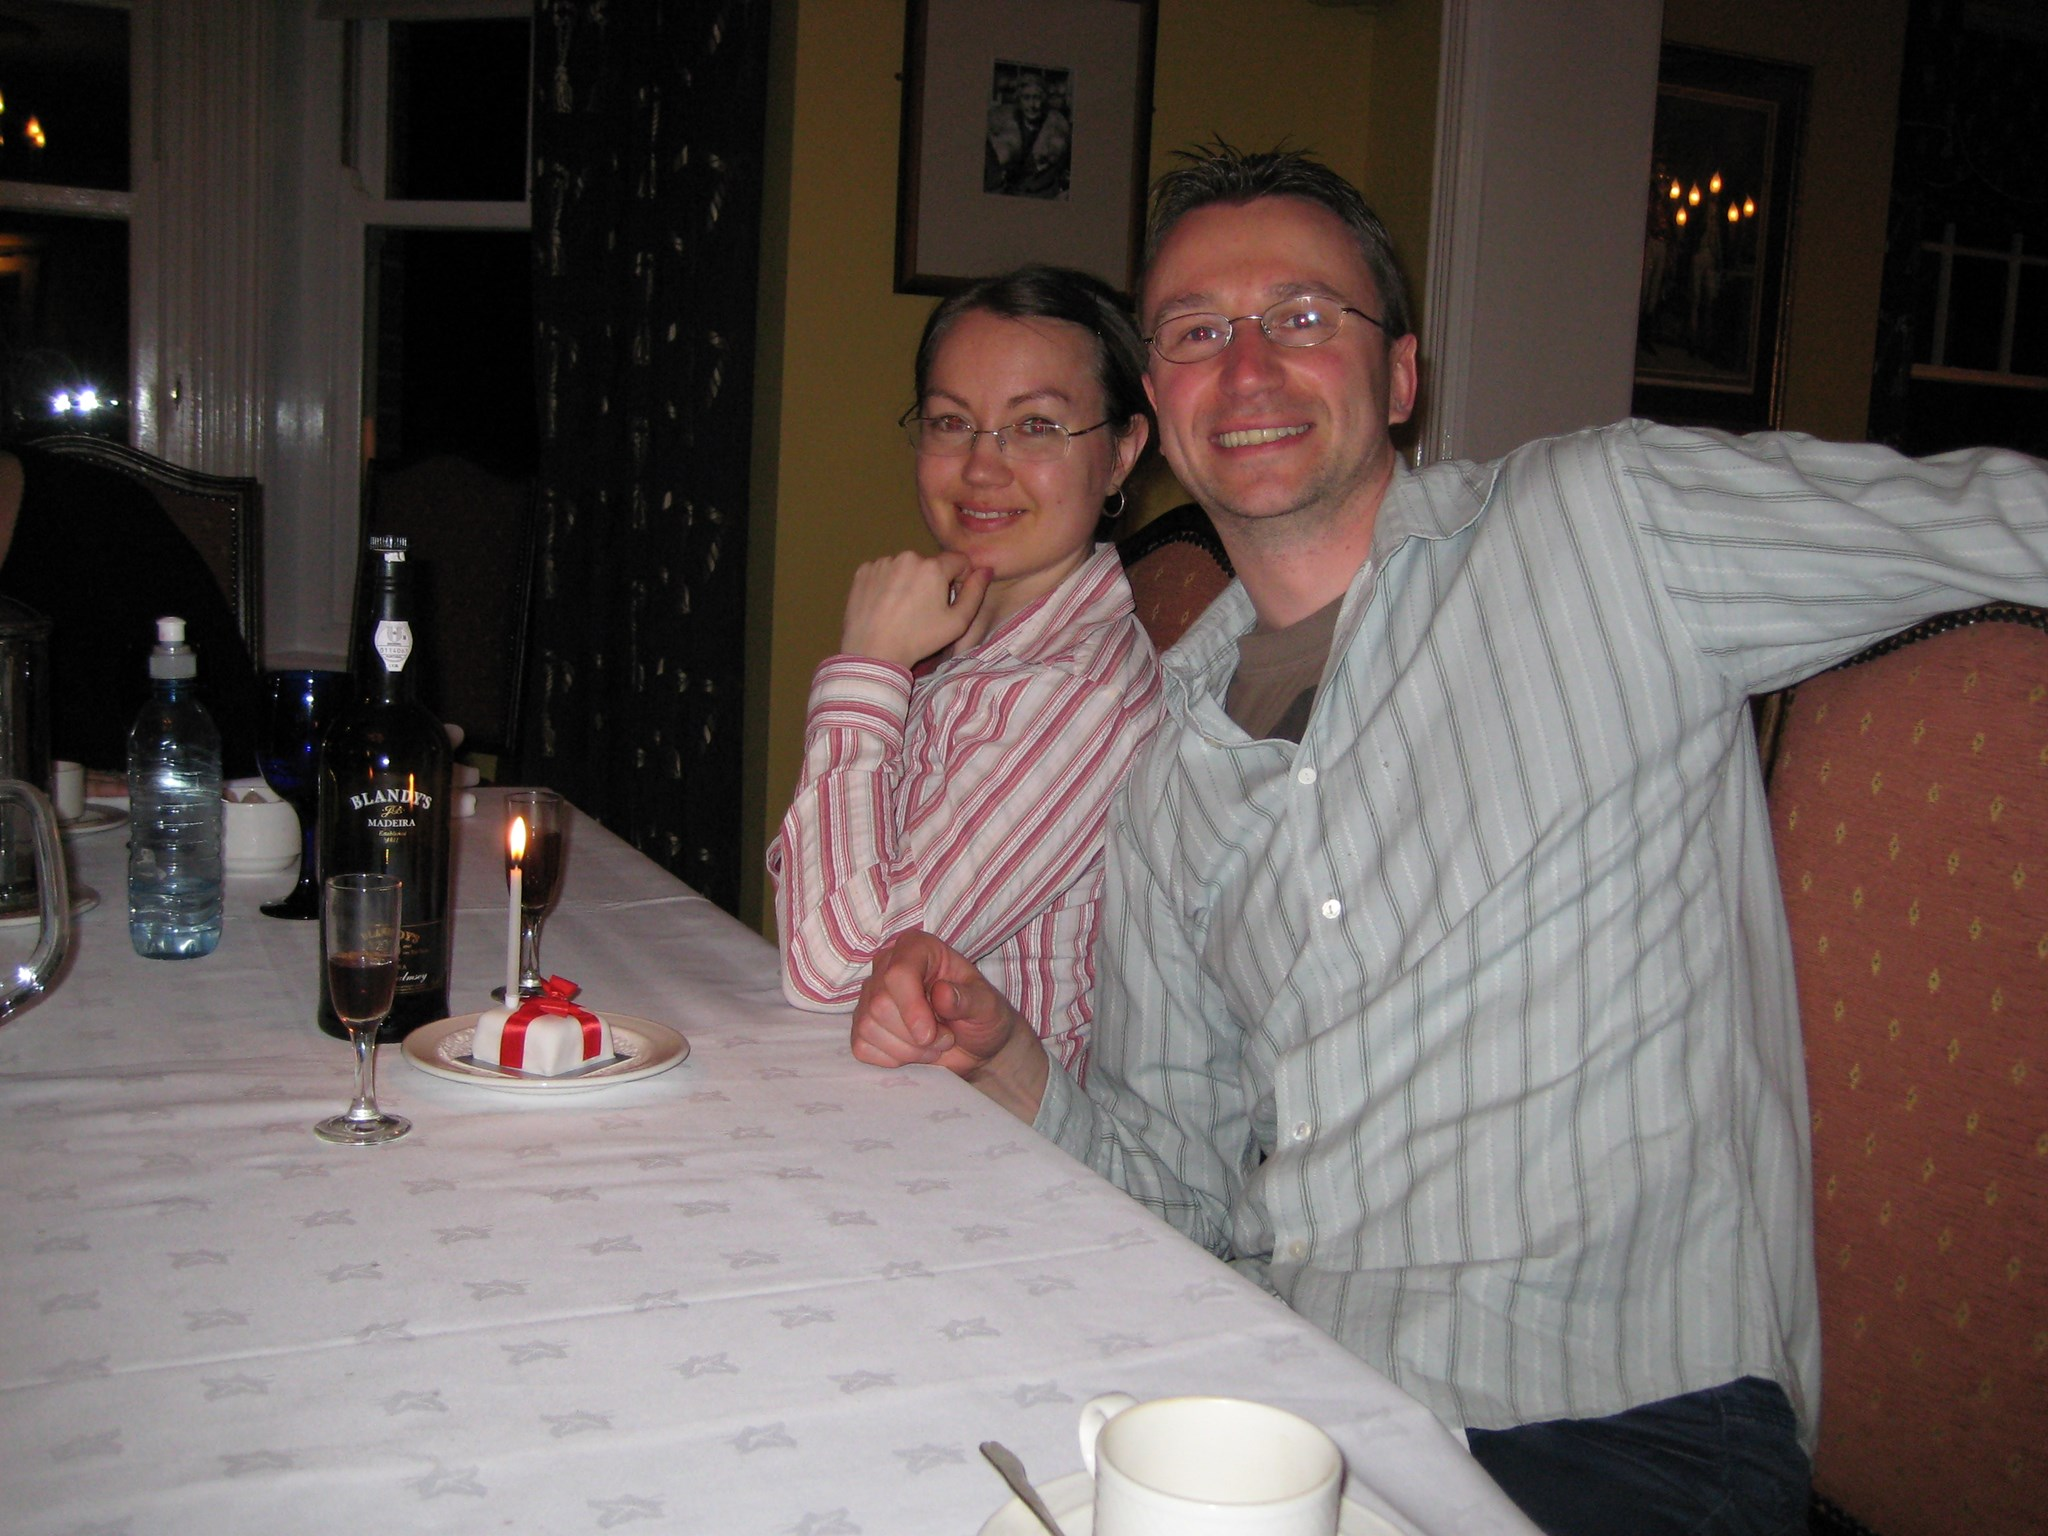 First 'Official' Wedding Anniversary